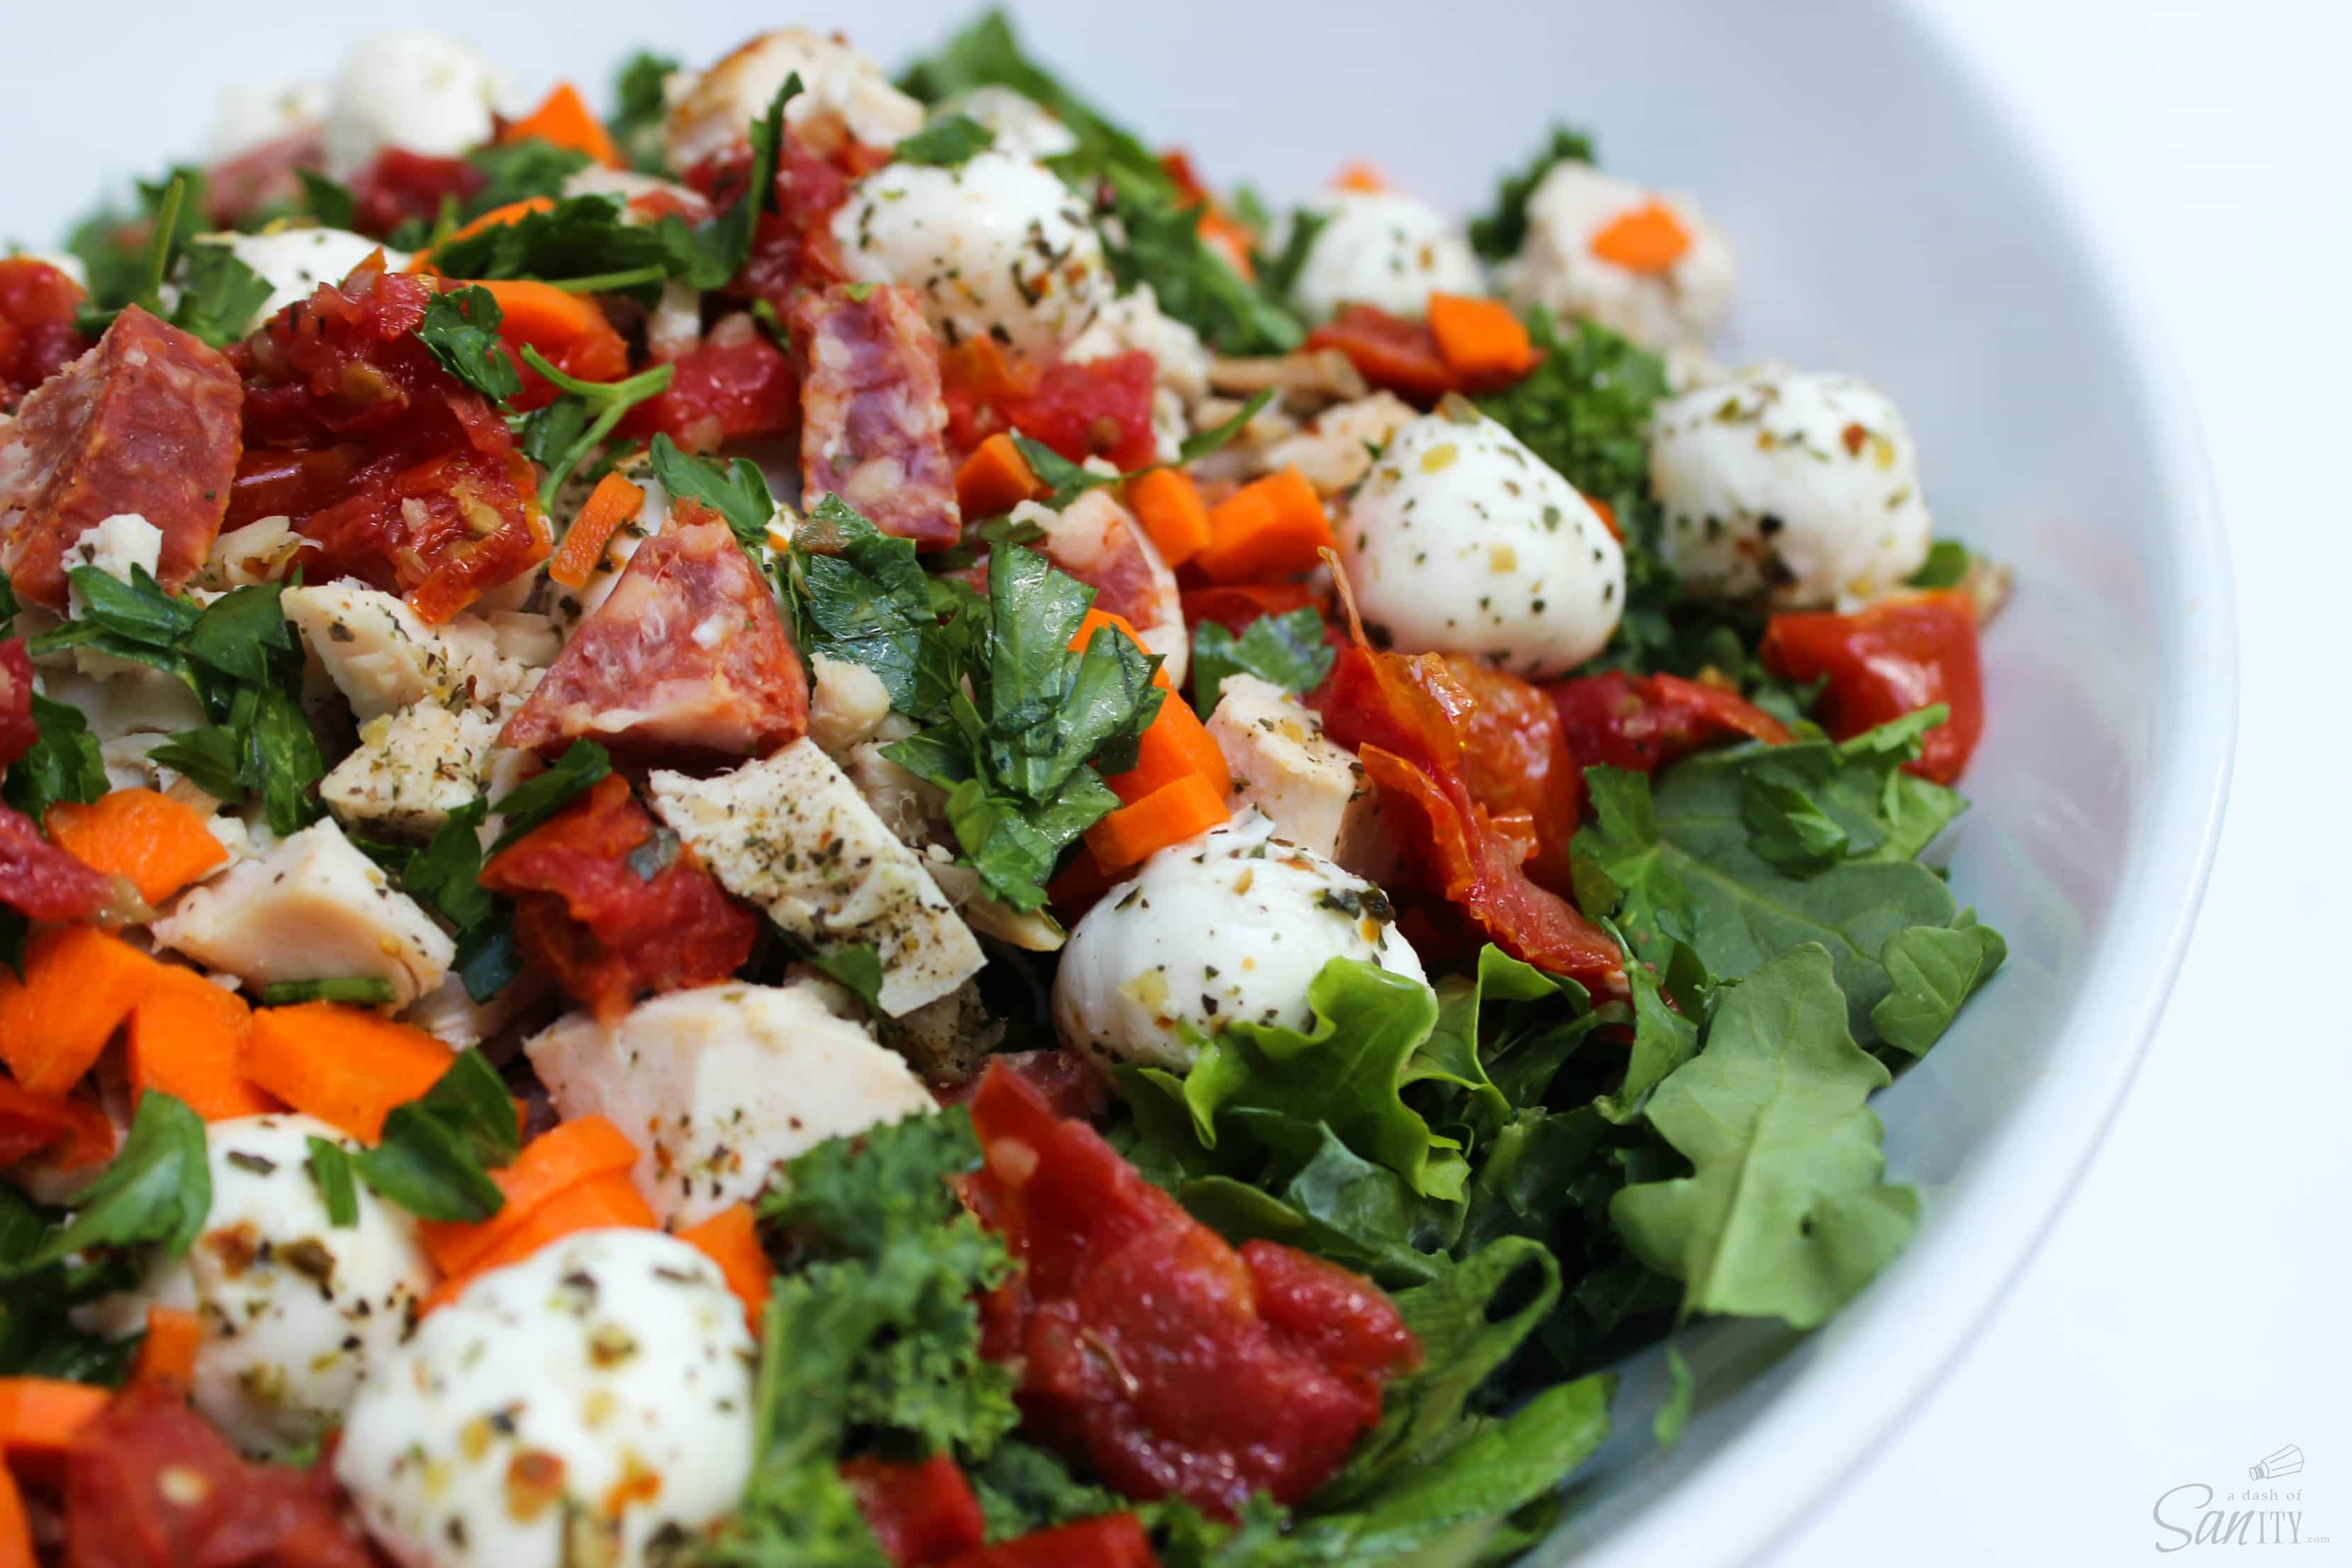 This Italian Kale Salad with Sweet Lemon Garlic Vinaigrette is packed with flavor with roasted tomatoes, chicken, pastrami, and fresh mozzarella cheese.